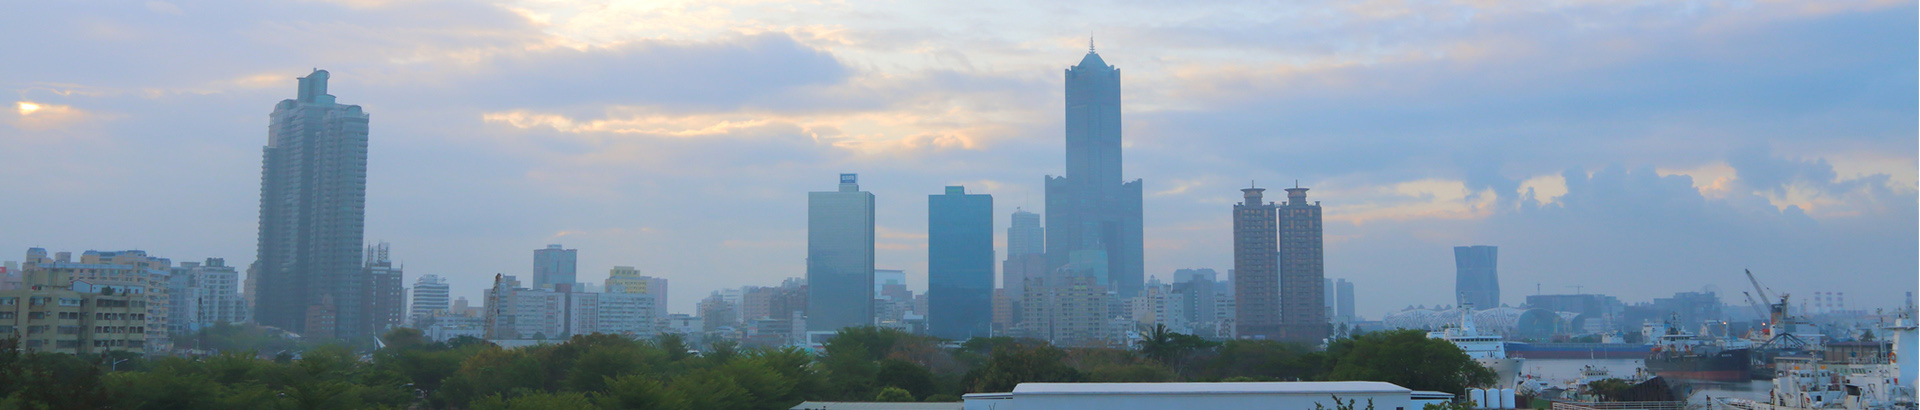 The global economy is picking up slowly, Taiwan's four major manufacturing industries are all growing